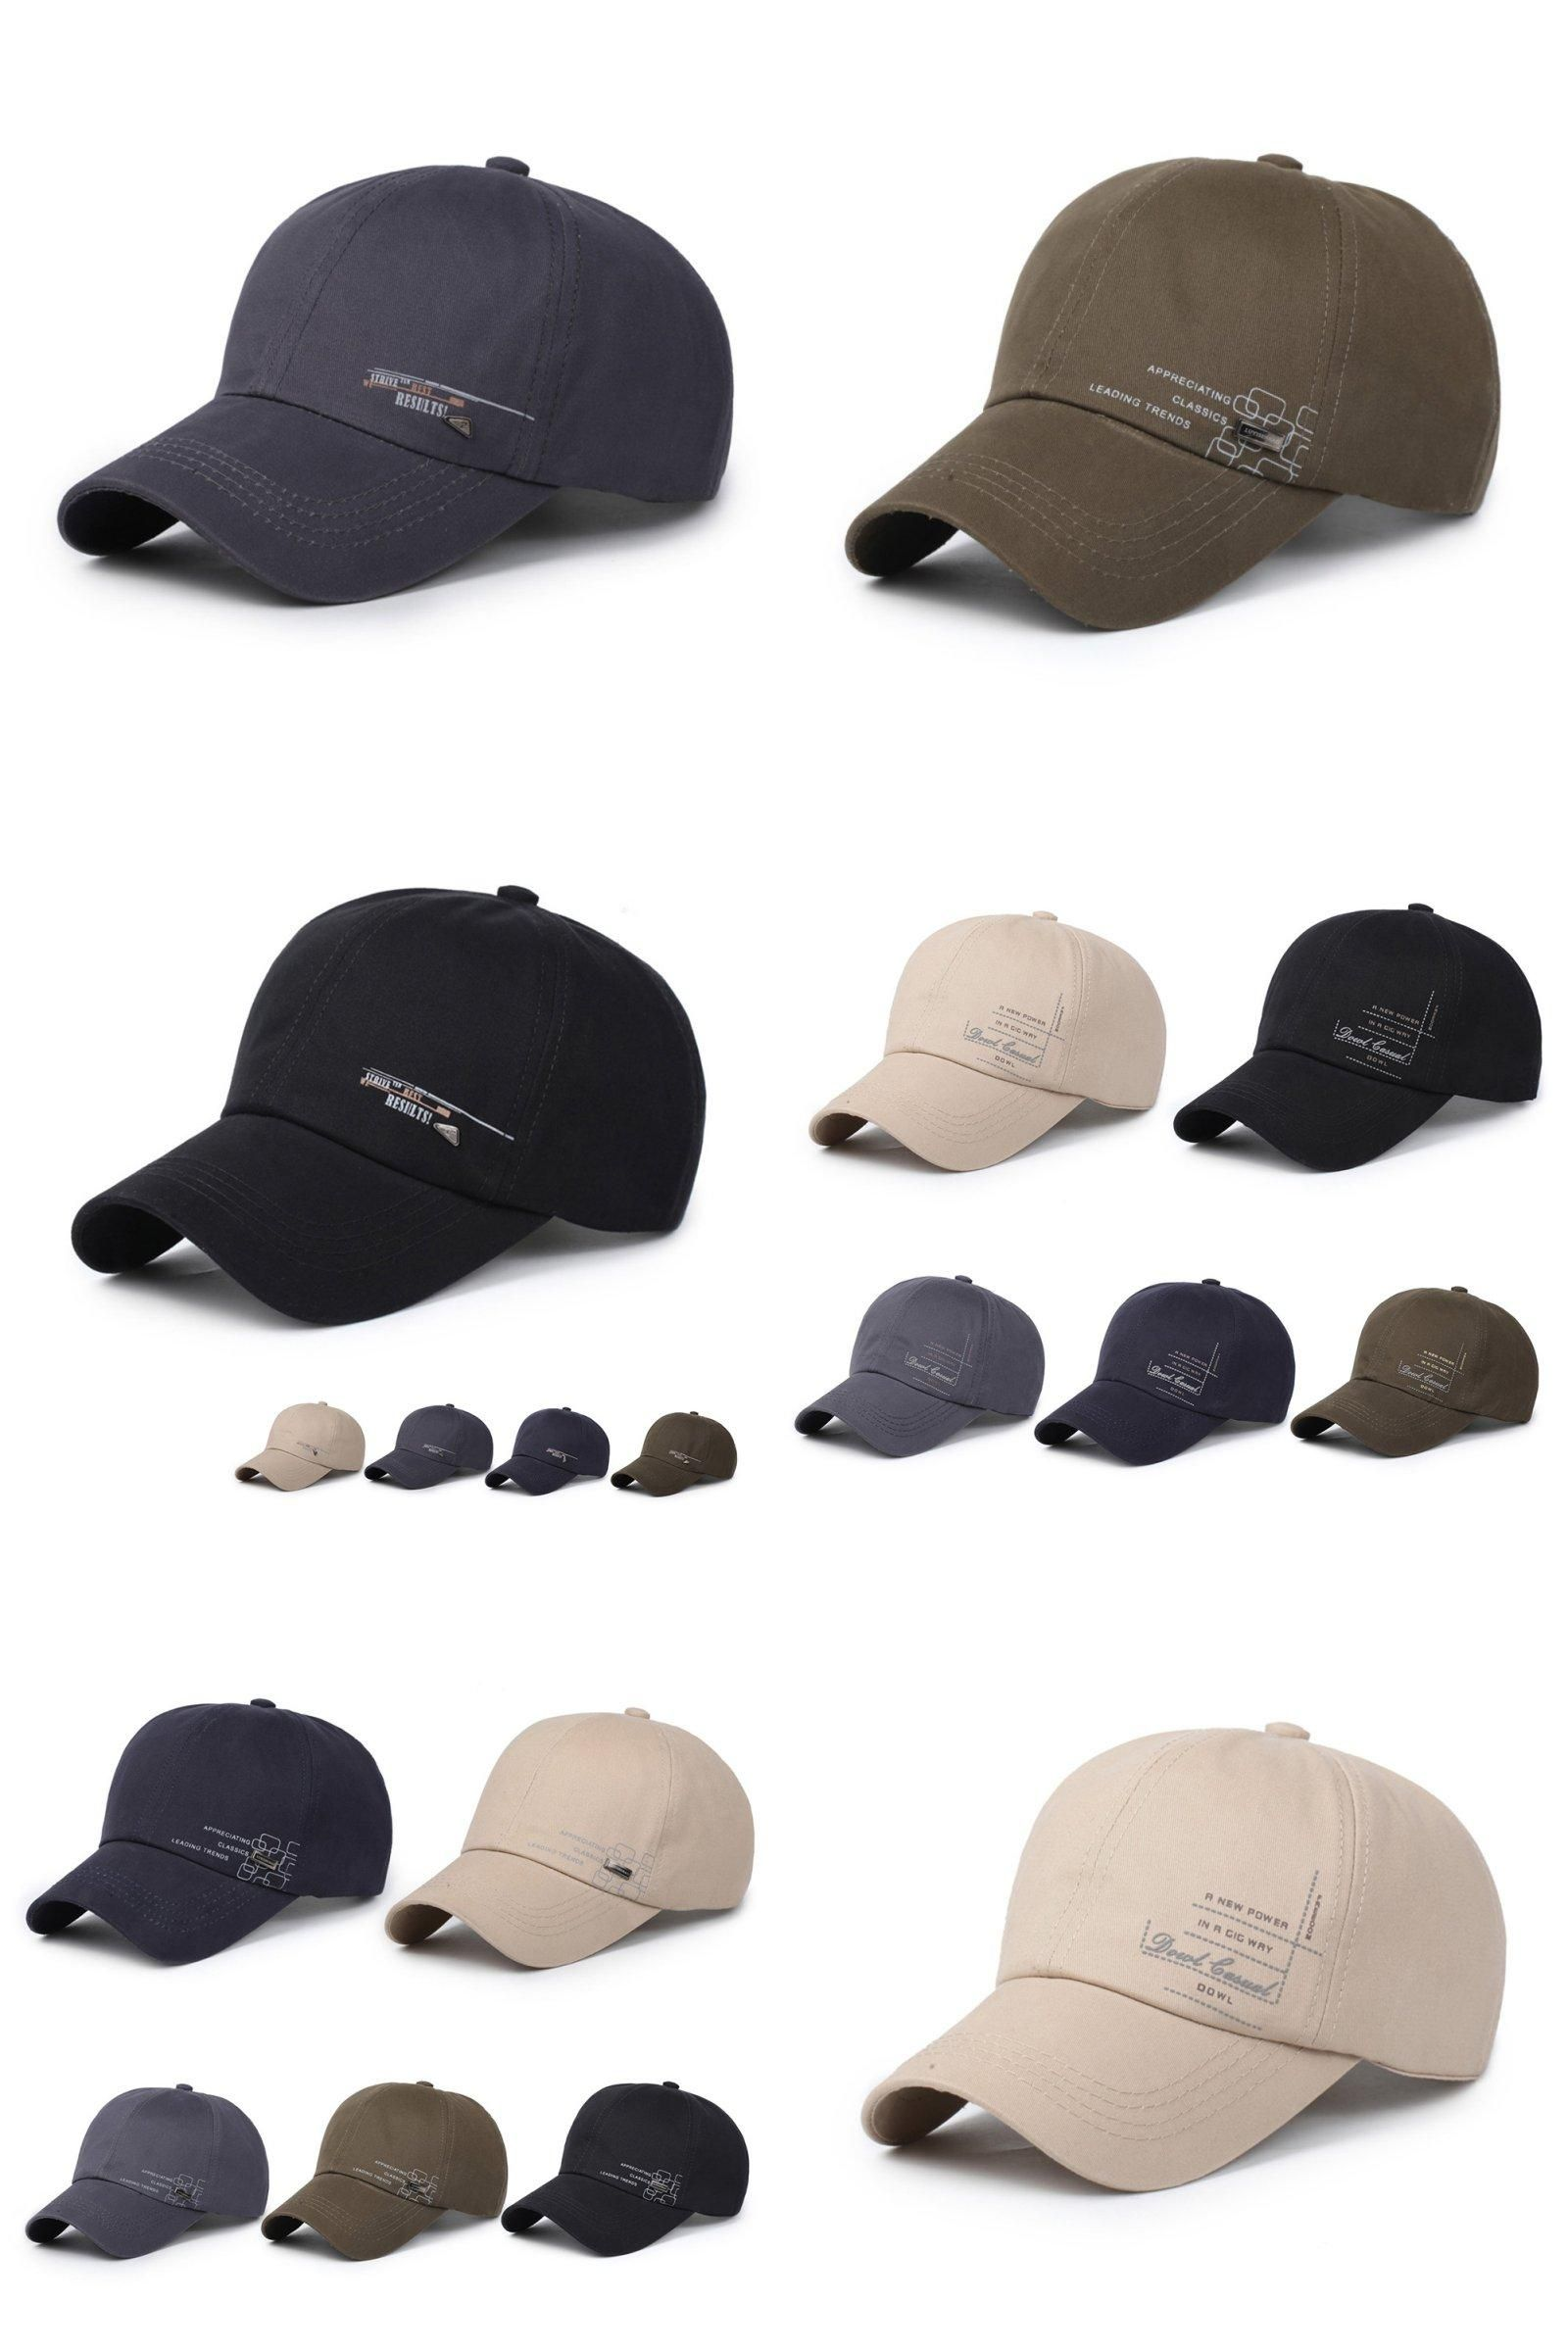 Visit to Buy  Men Women Casual Fashion Baseball Cap Ball Caps Breathable  Team Letters 09d8f0db6b